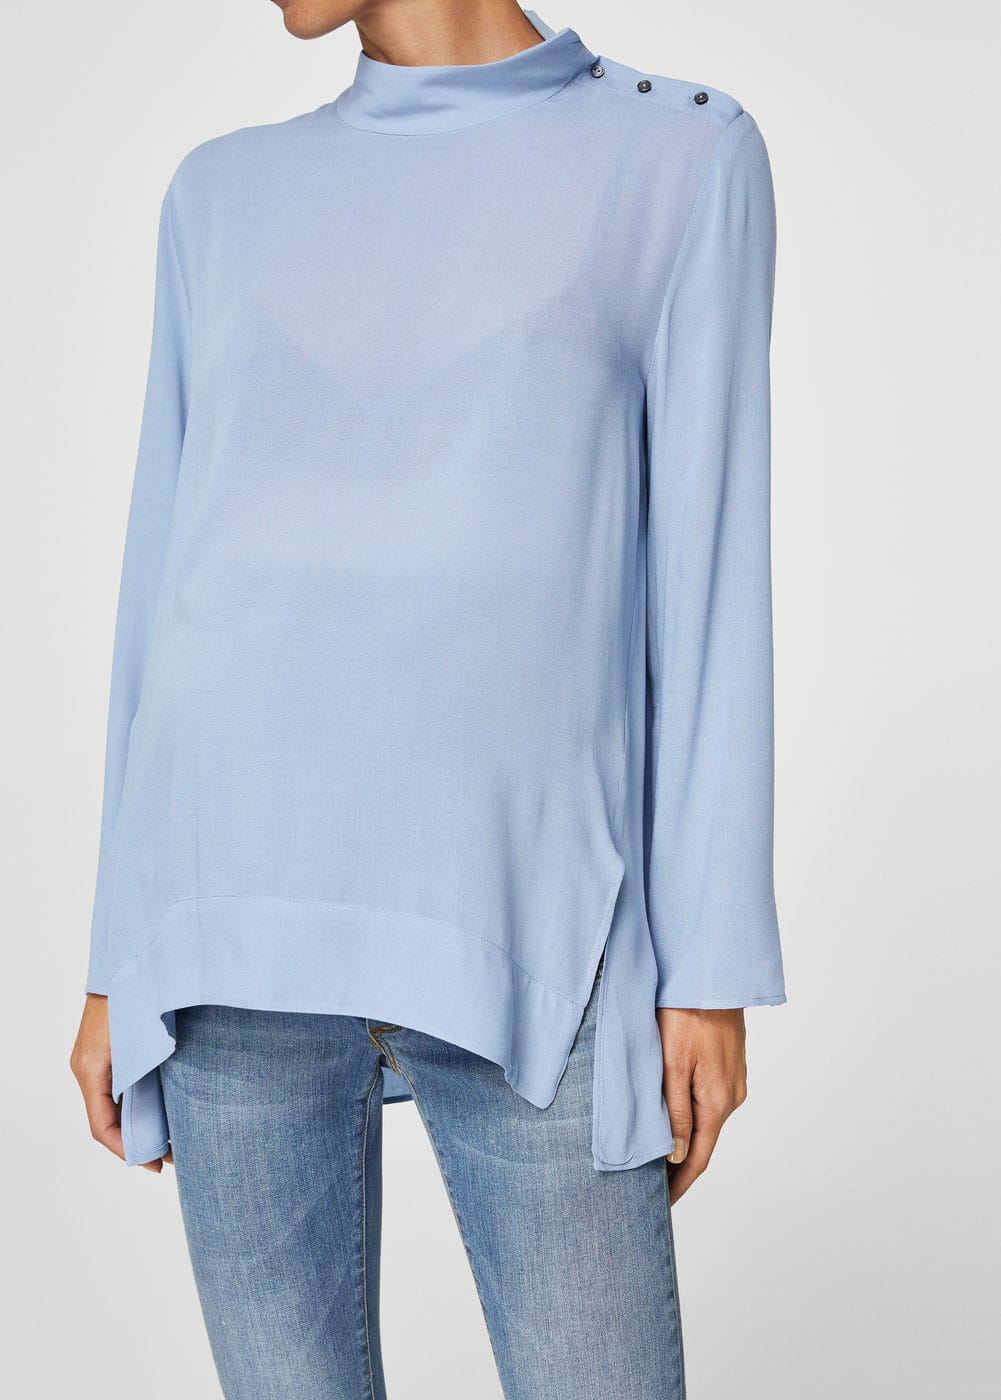 Turtleneck blouse | MANGO